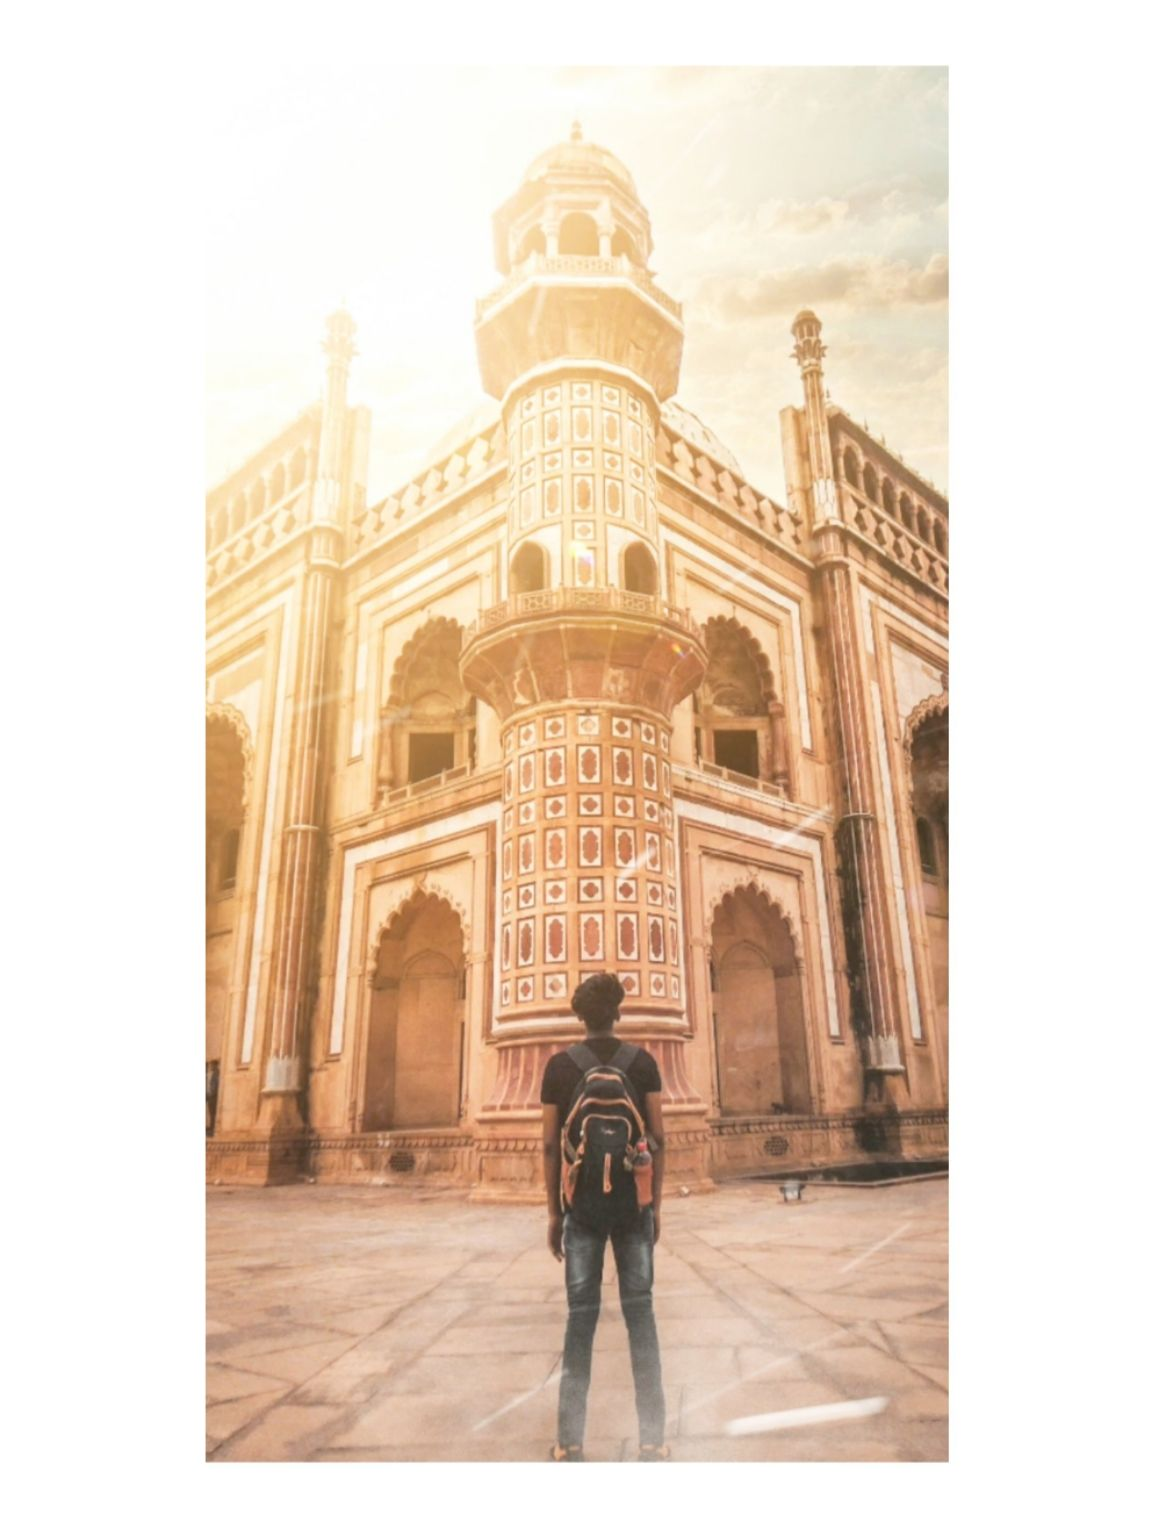 Photo of Safdarjung Tomb By abhijeet roy